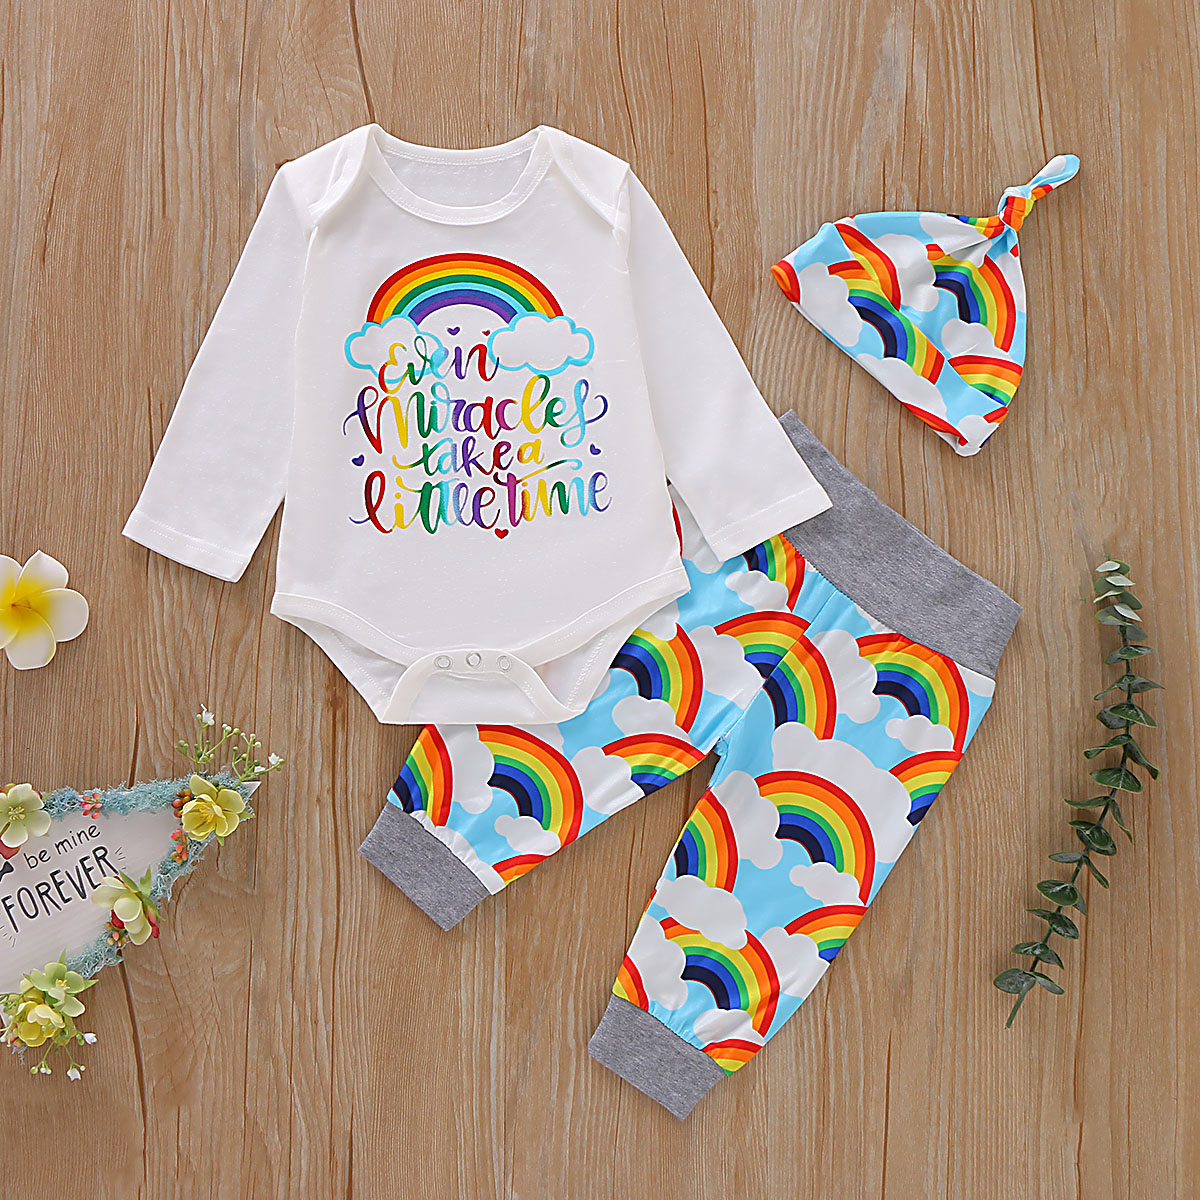 Toddler Kids Girls Rainbow Print Hoodies Blouse Tops+Pants Baby Clothes Outfit